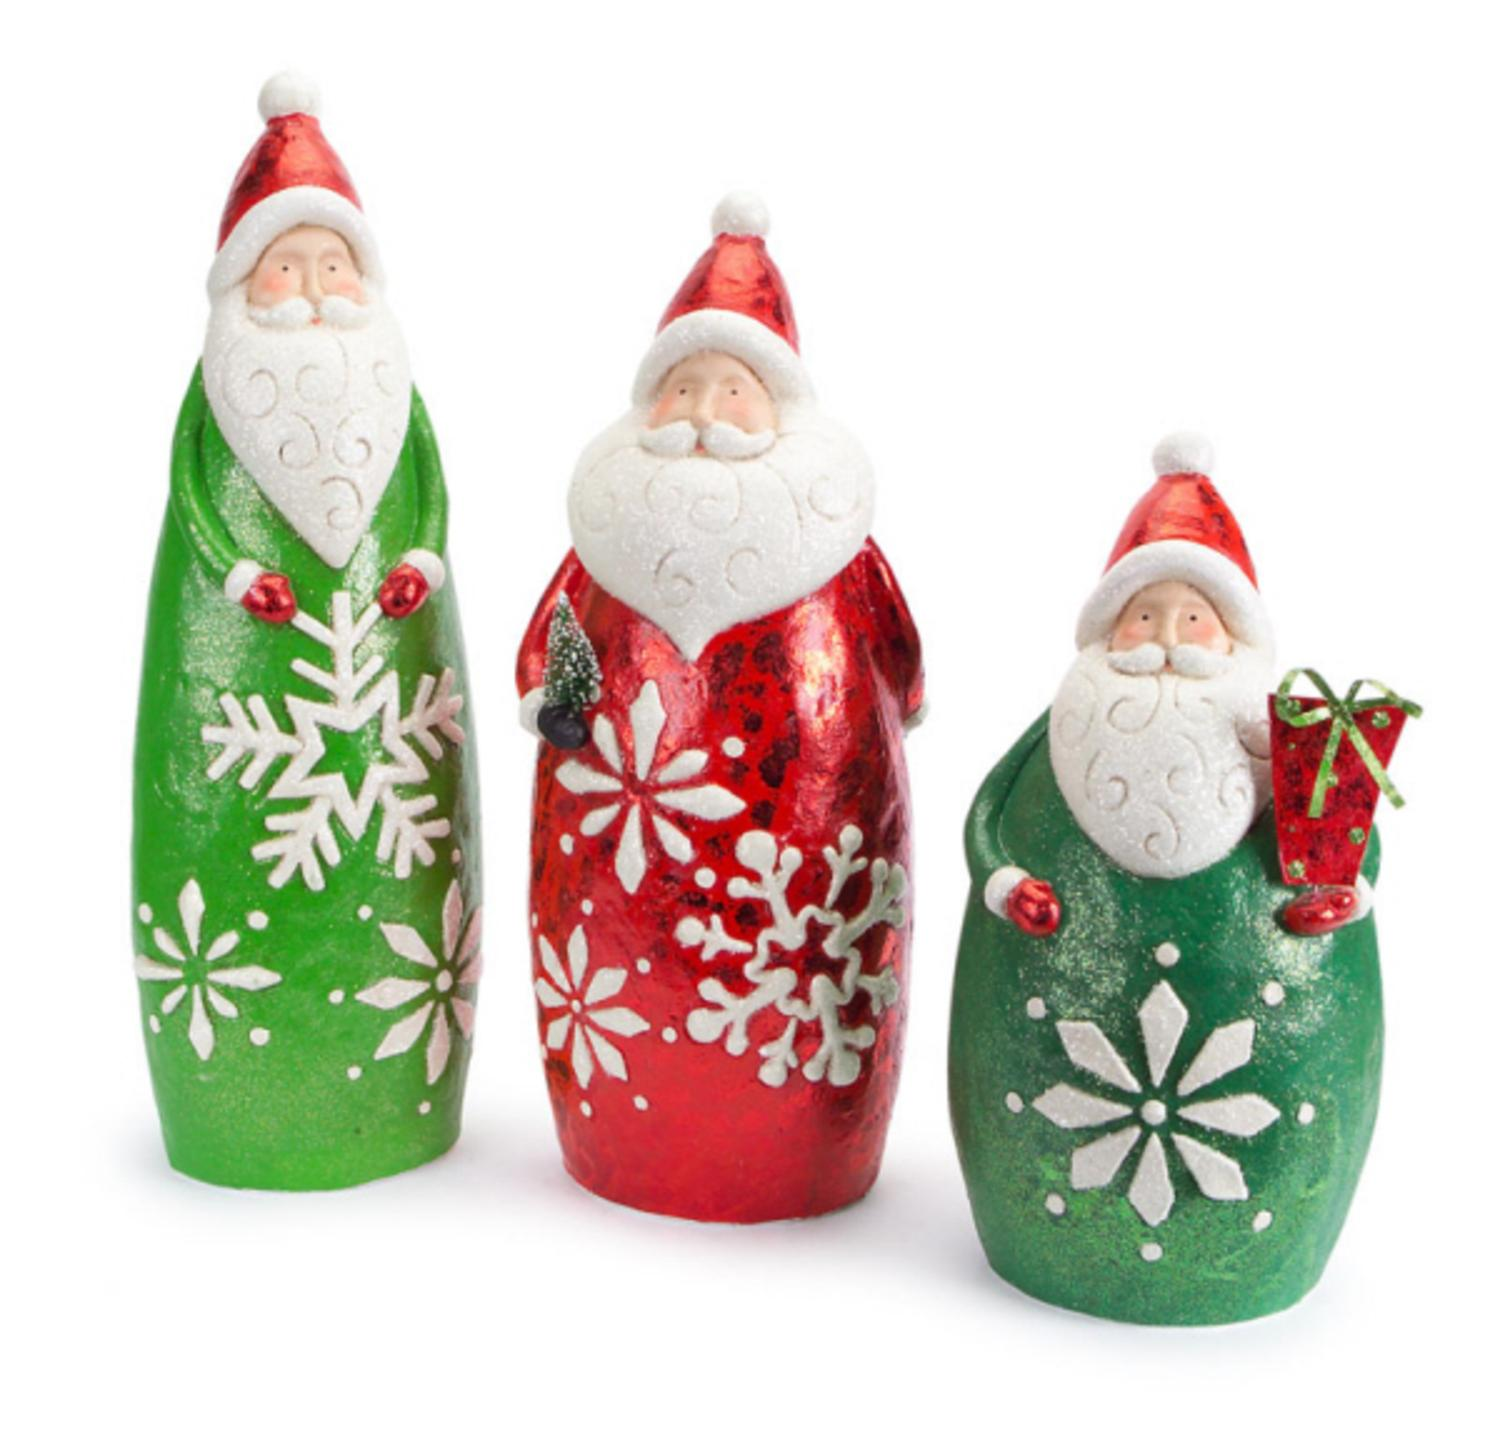 Set of 3 Santa Claus in Glittered Snowflake Suit Christmas Figure Decorations 24.25""